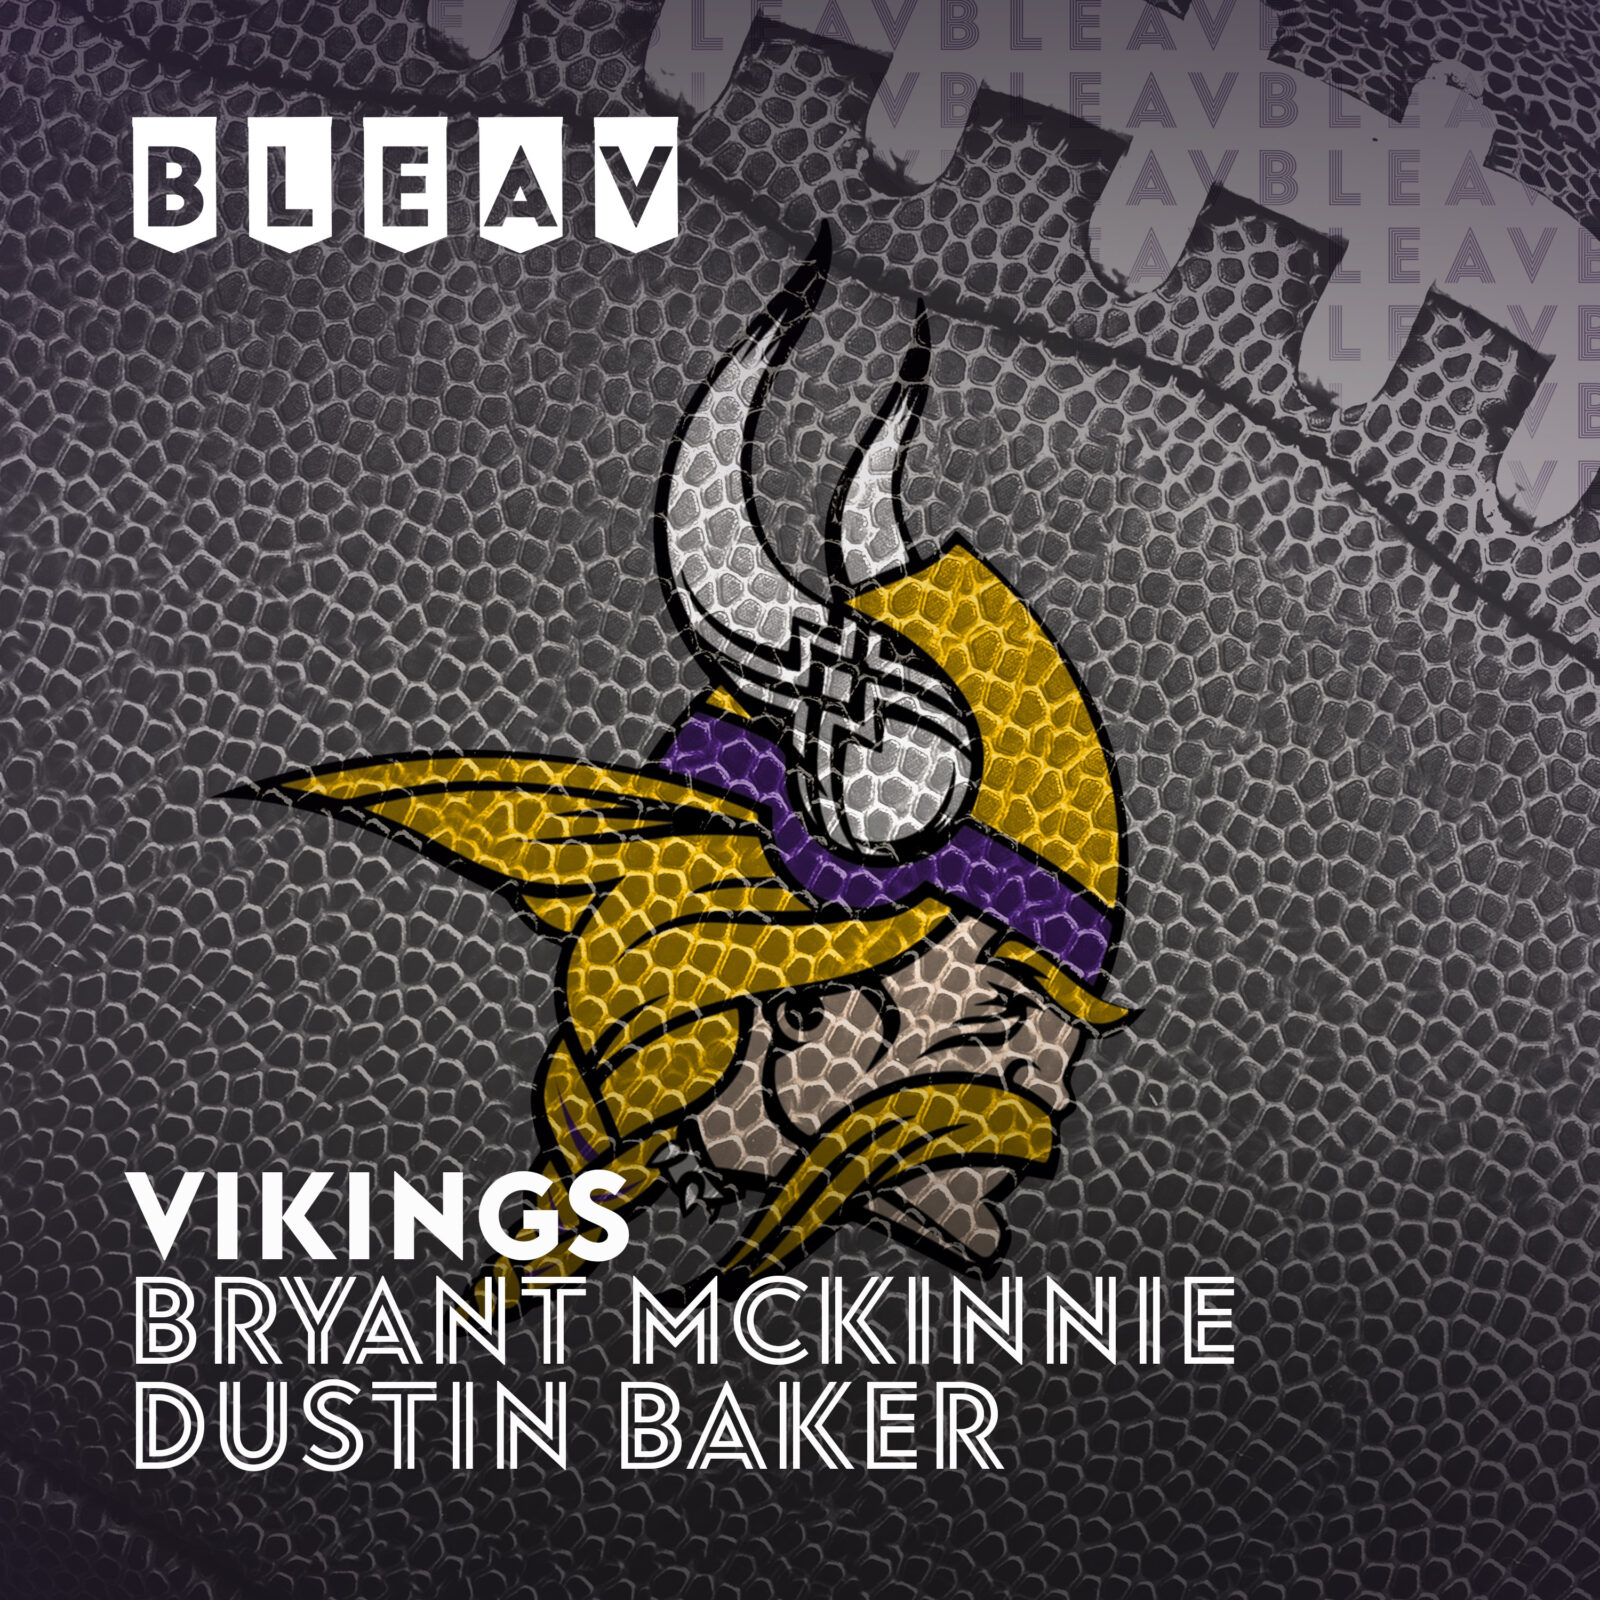 Troy Williamson stops by to chat w our Dustin Baker & Bryant McKinnie [Bleav in Vikings Podcast]